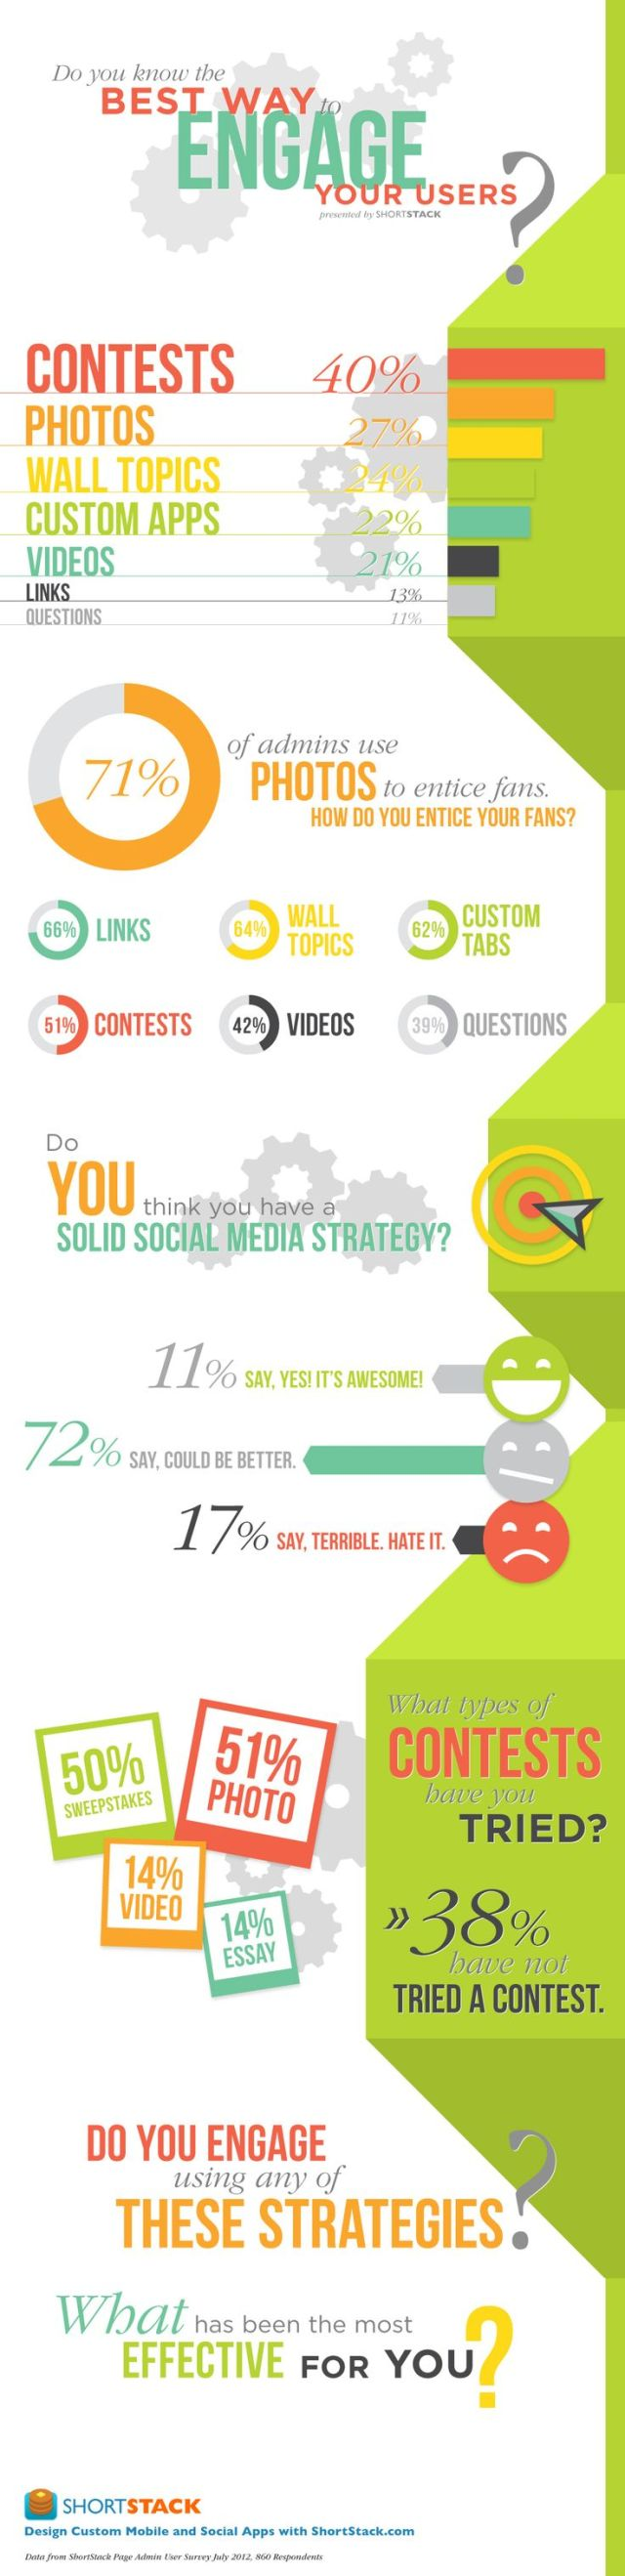 social-media-strategy-best-ways-to-engage-your-fans-infographic_54c60097912c9